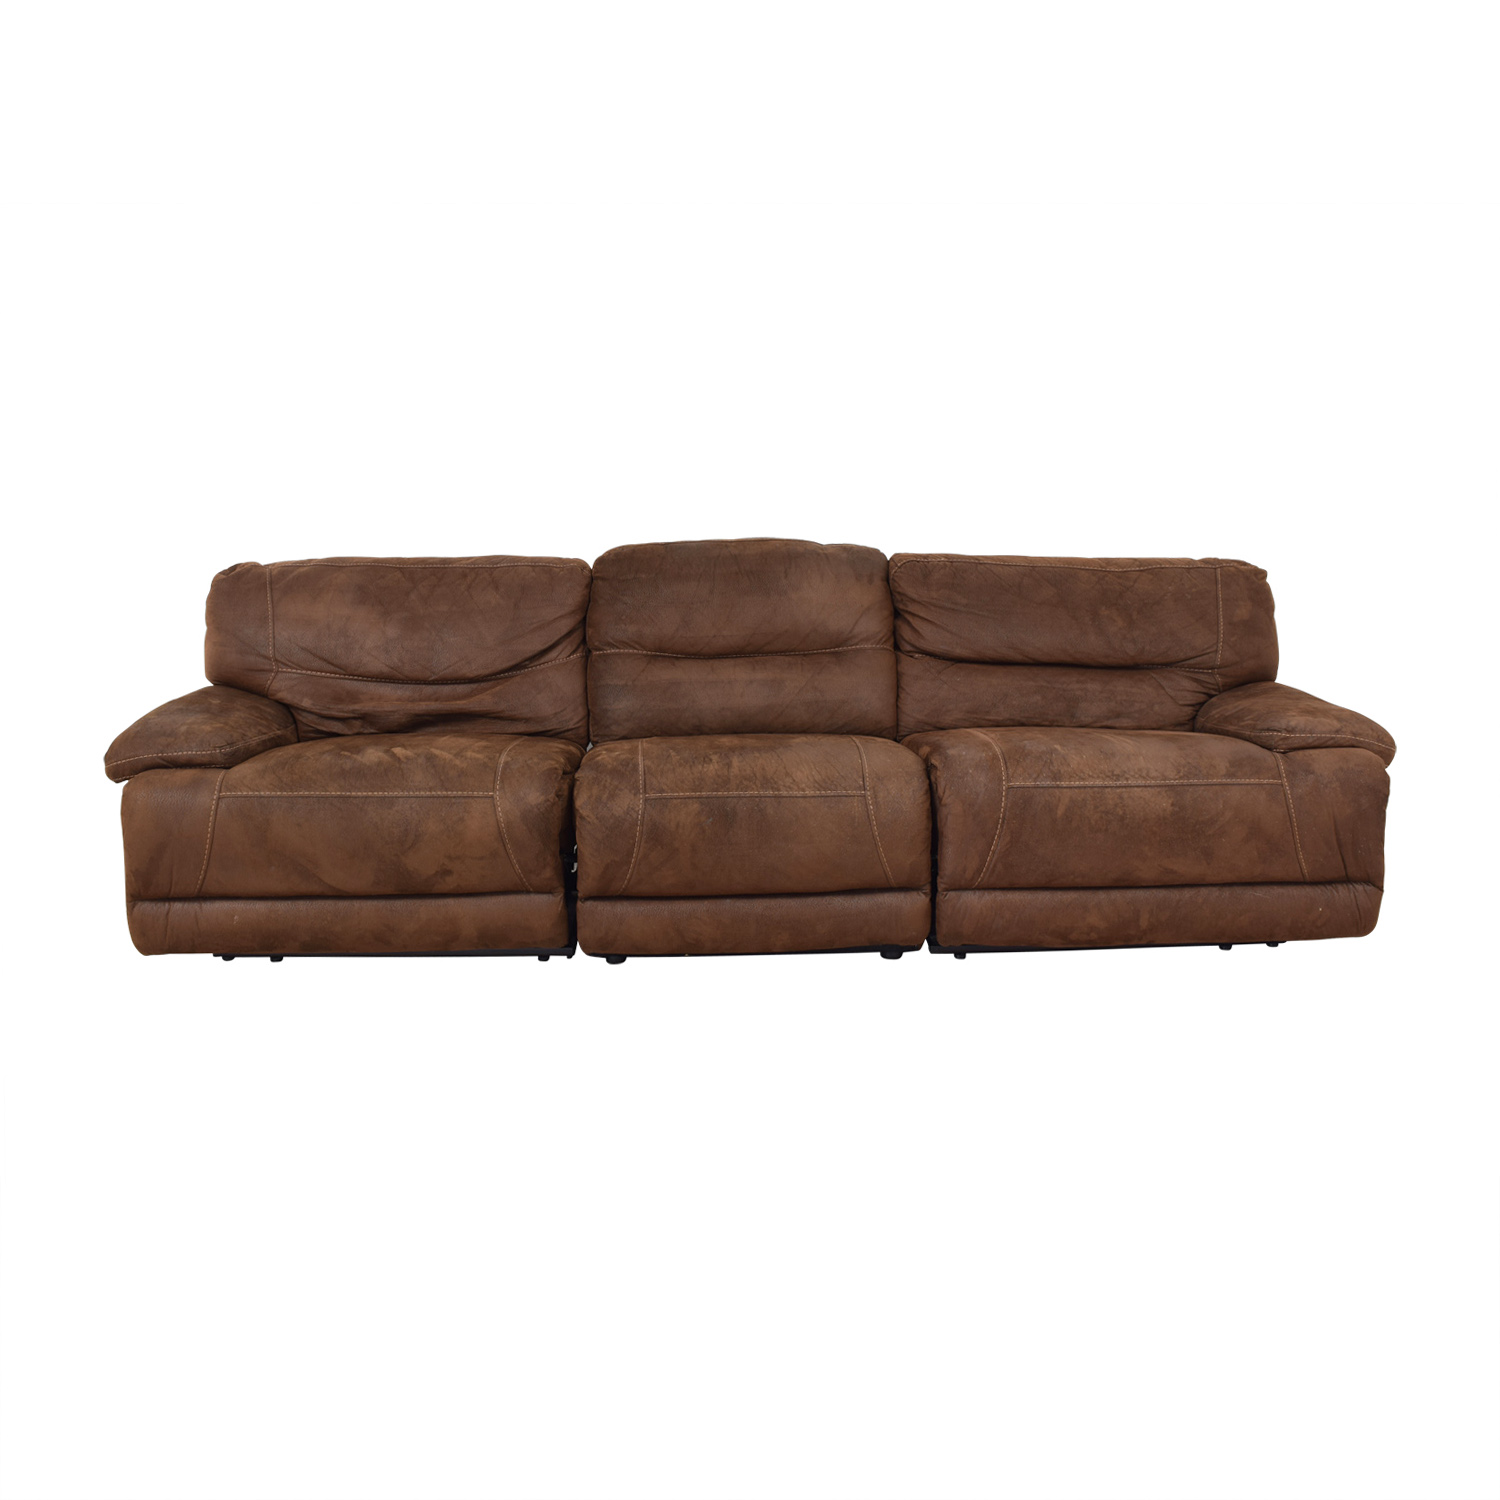 Bob's Discount Furniture Bob's Discount Furniture Reclining Sectional price